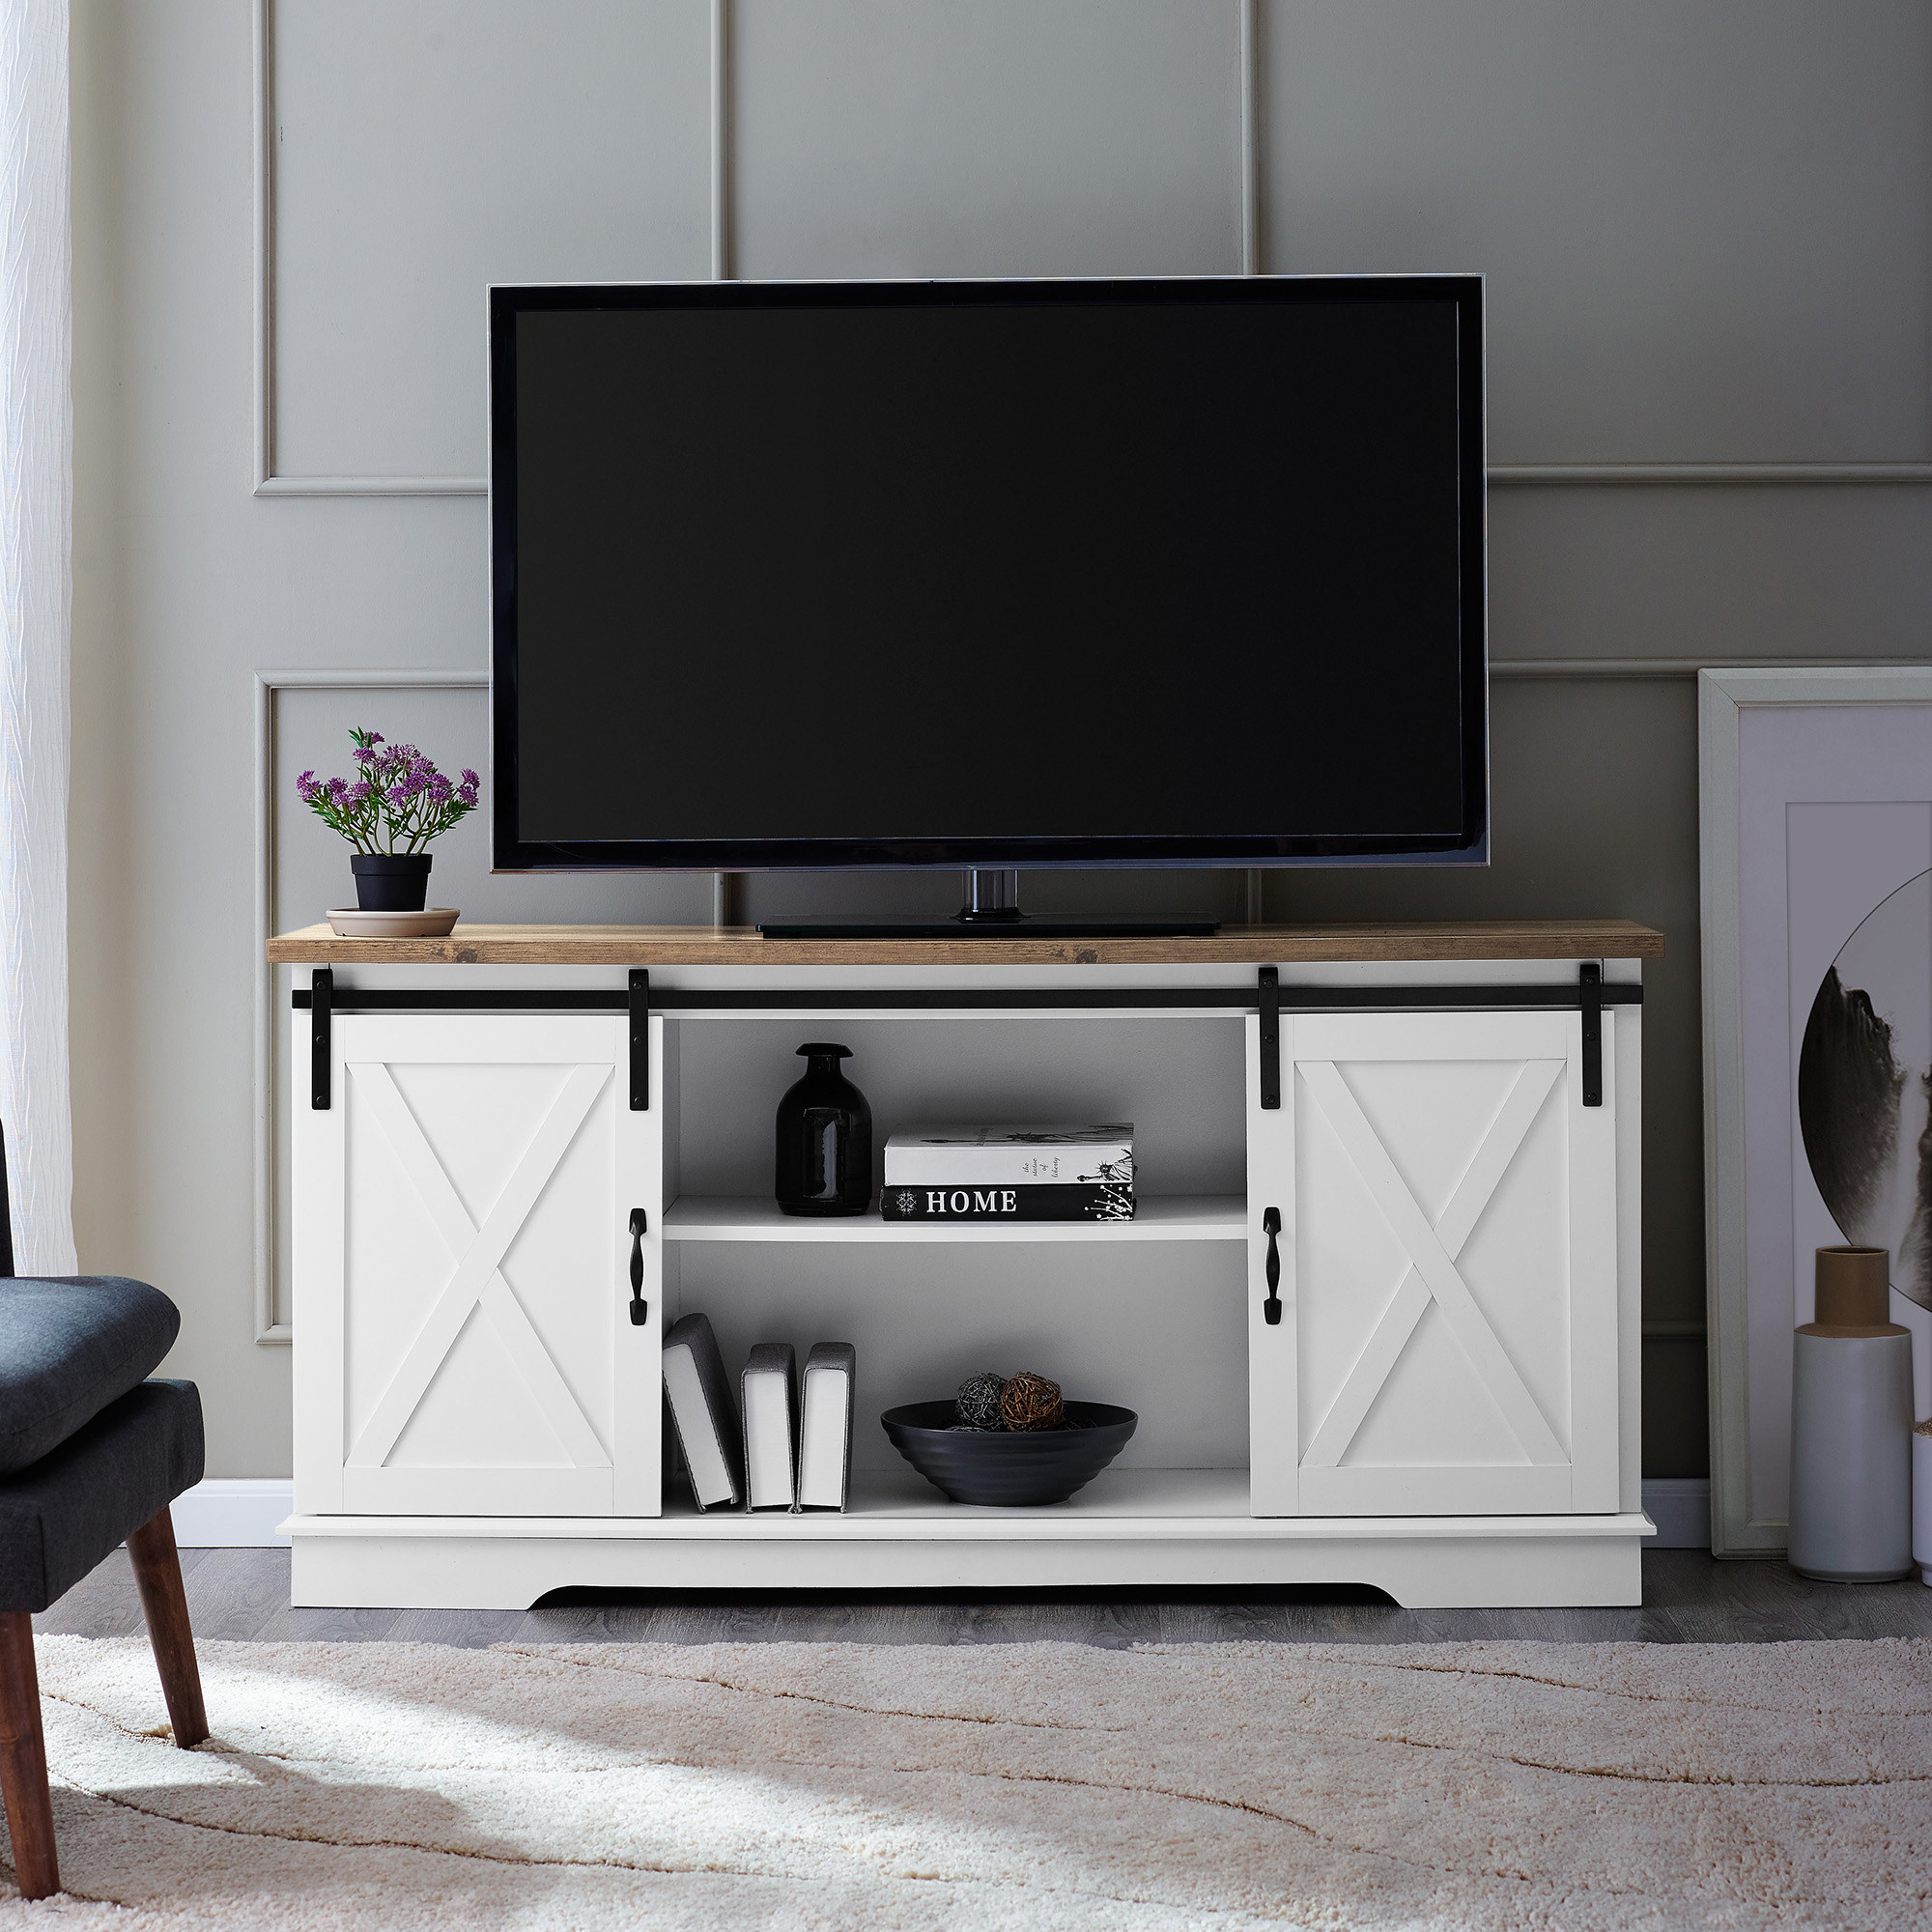 A white wood TV stand with two shelves and two cabinets